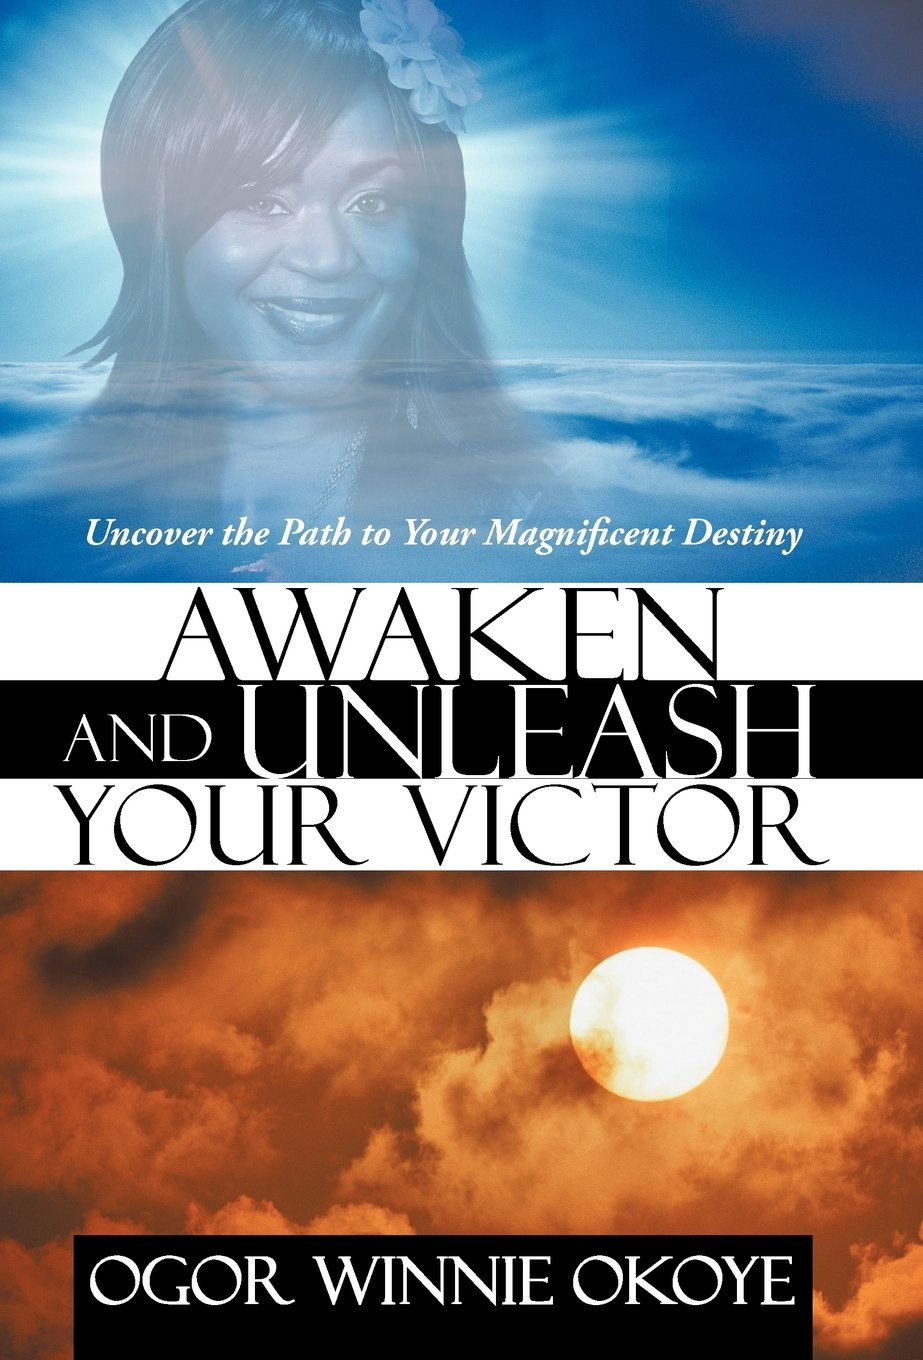 Download Awaken and Unleash Your Victor: Uncover the Path to Your Magnificent Destiny pdf epub